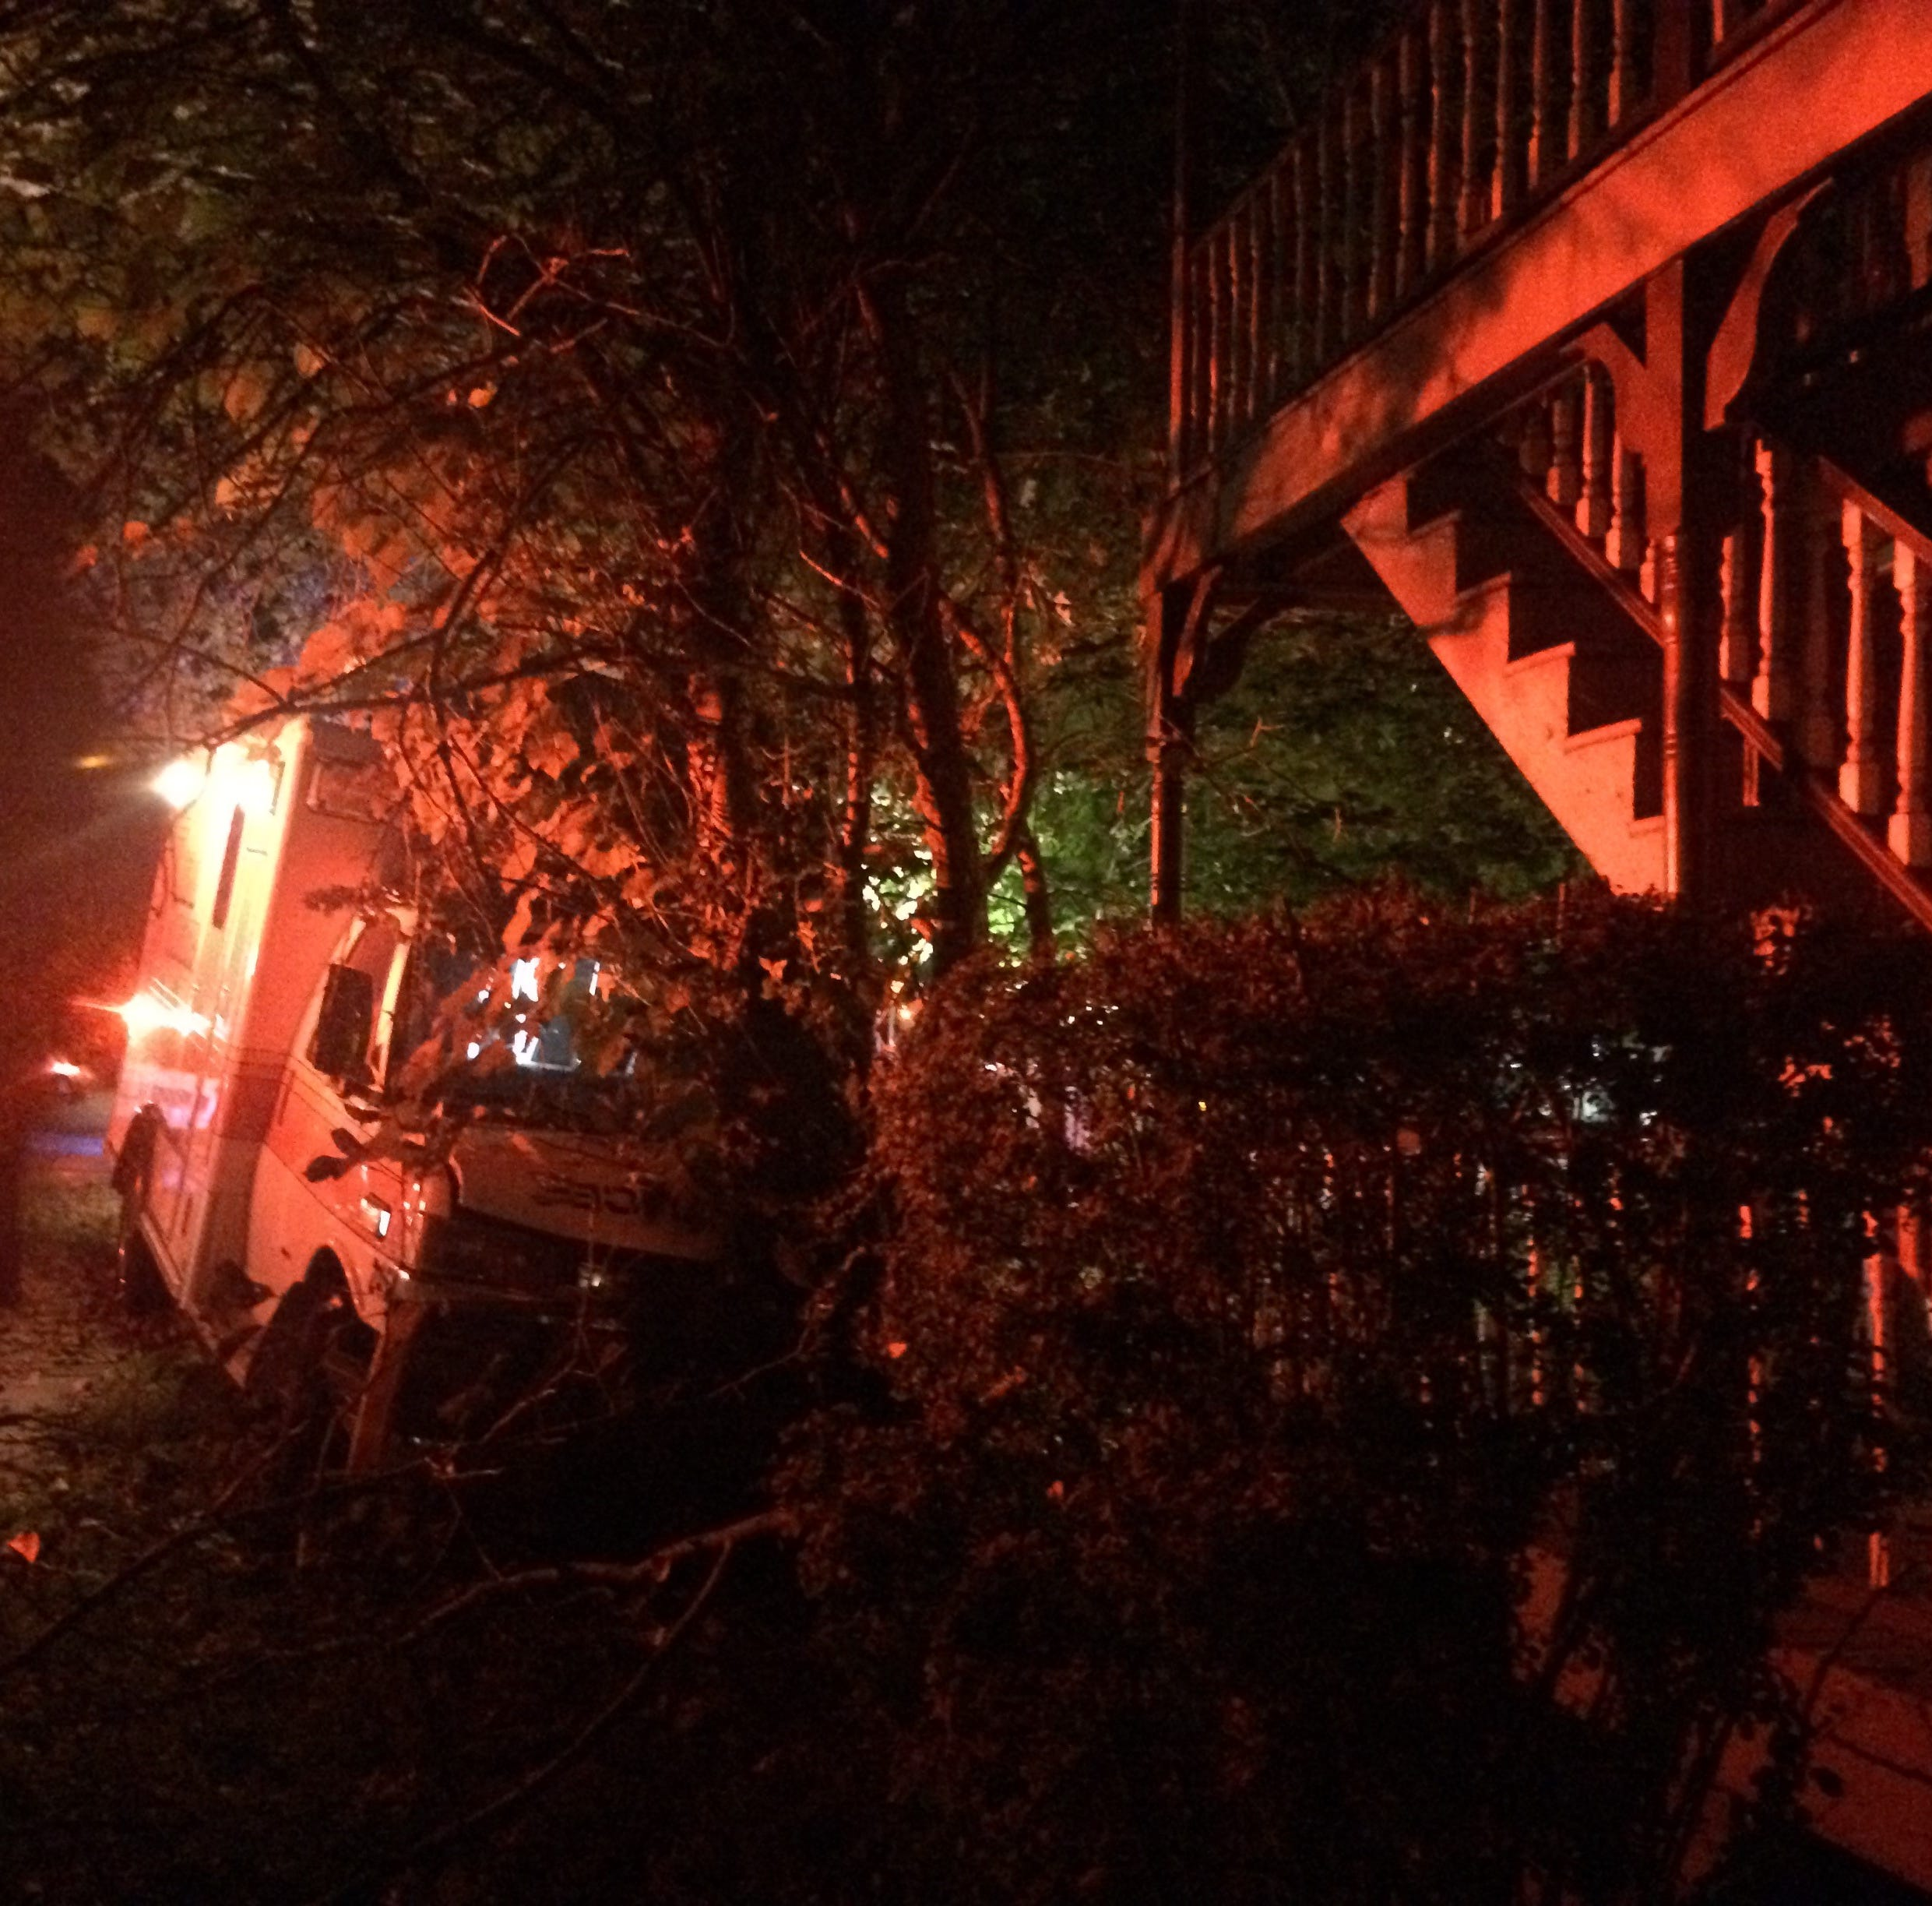 An ambulance crashed into a tree in the City of Poughkeepsie near Route 44 and Little Jefferson Street early Monday morning.